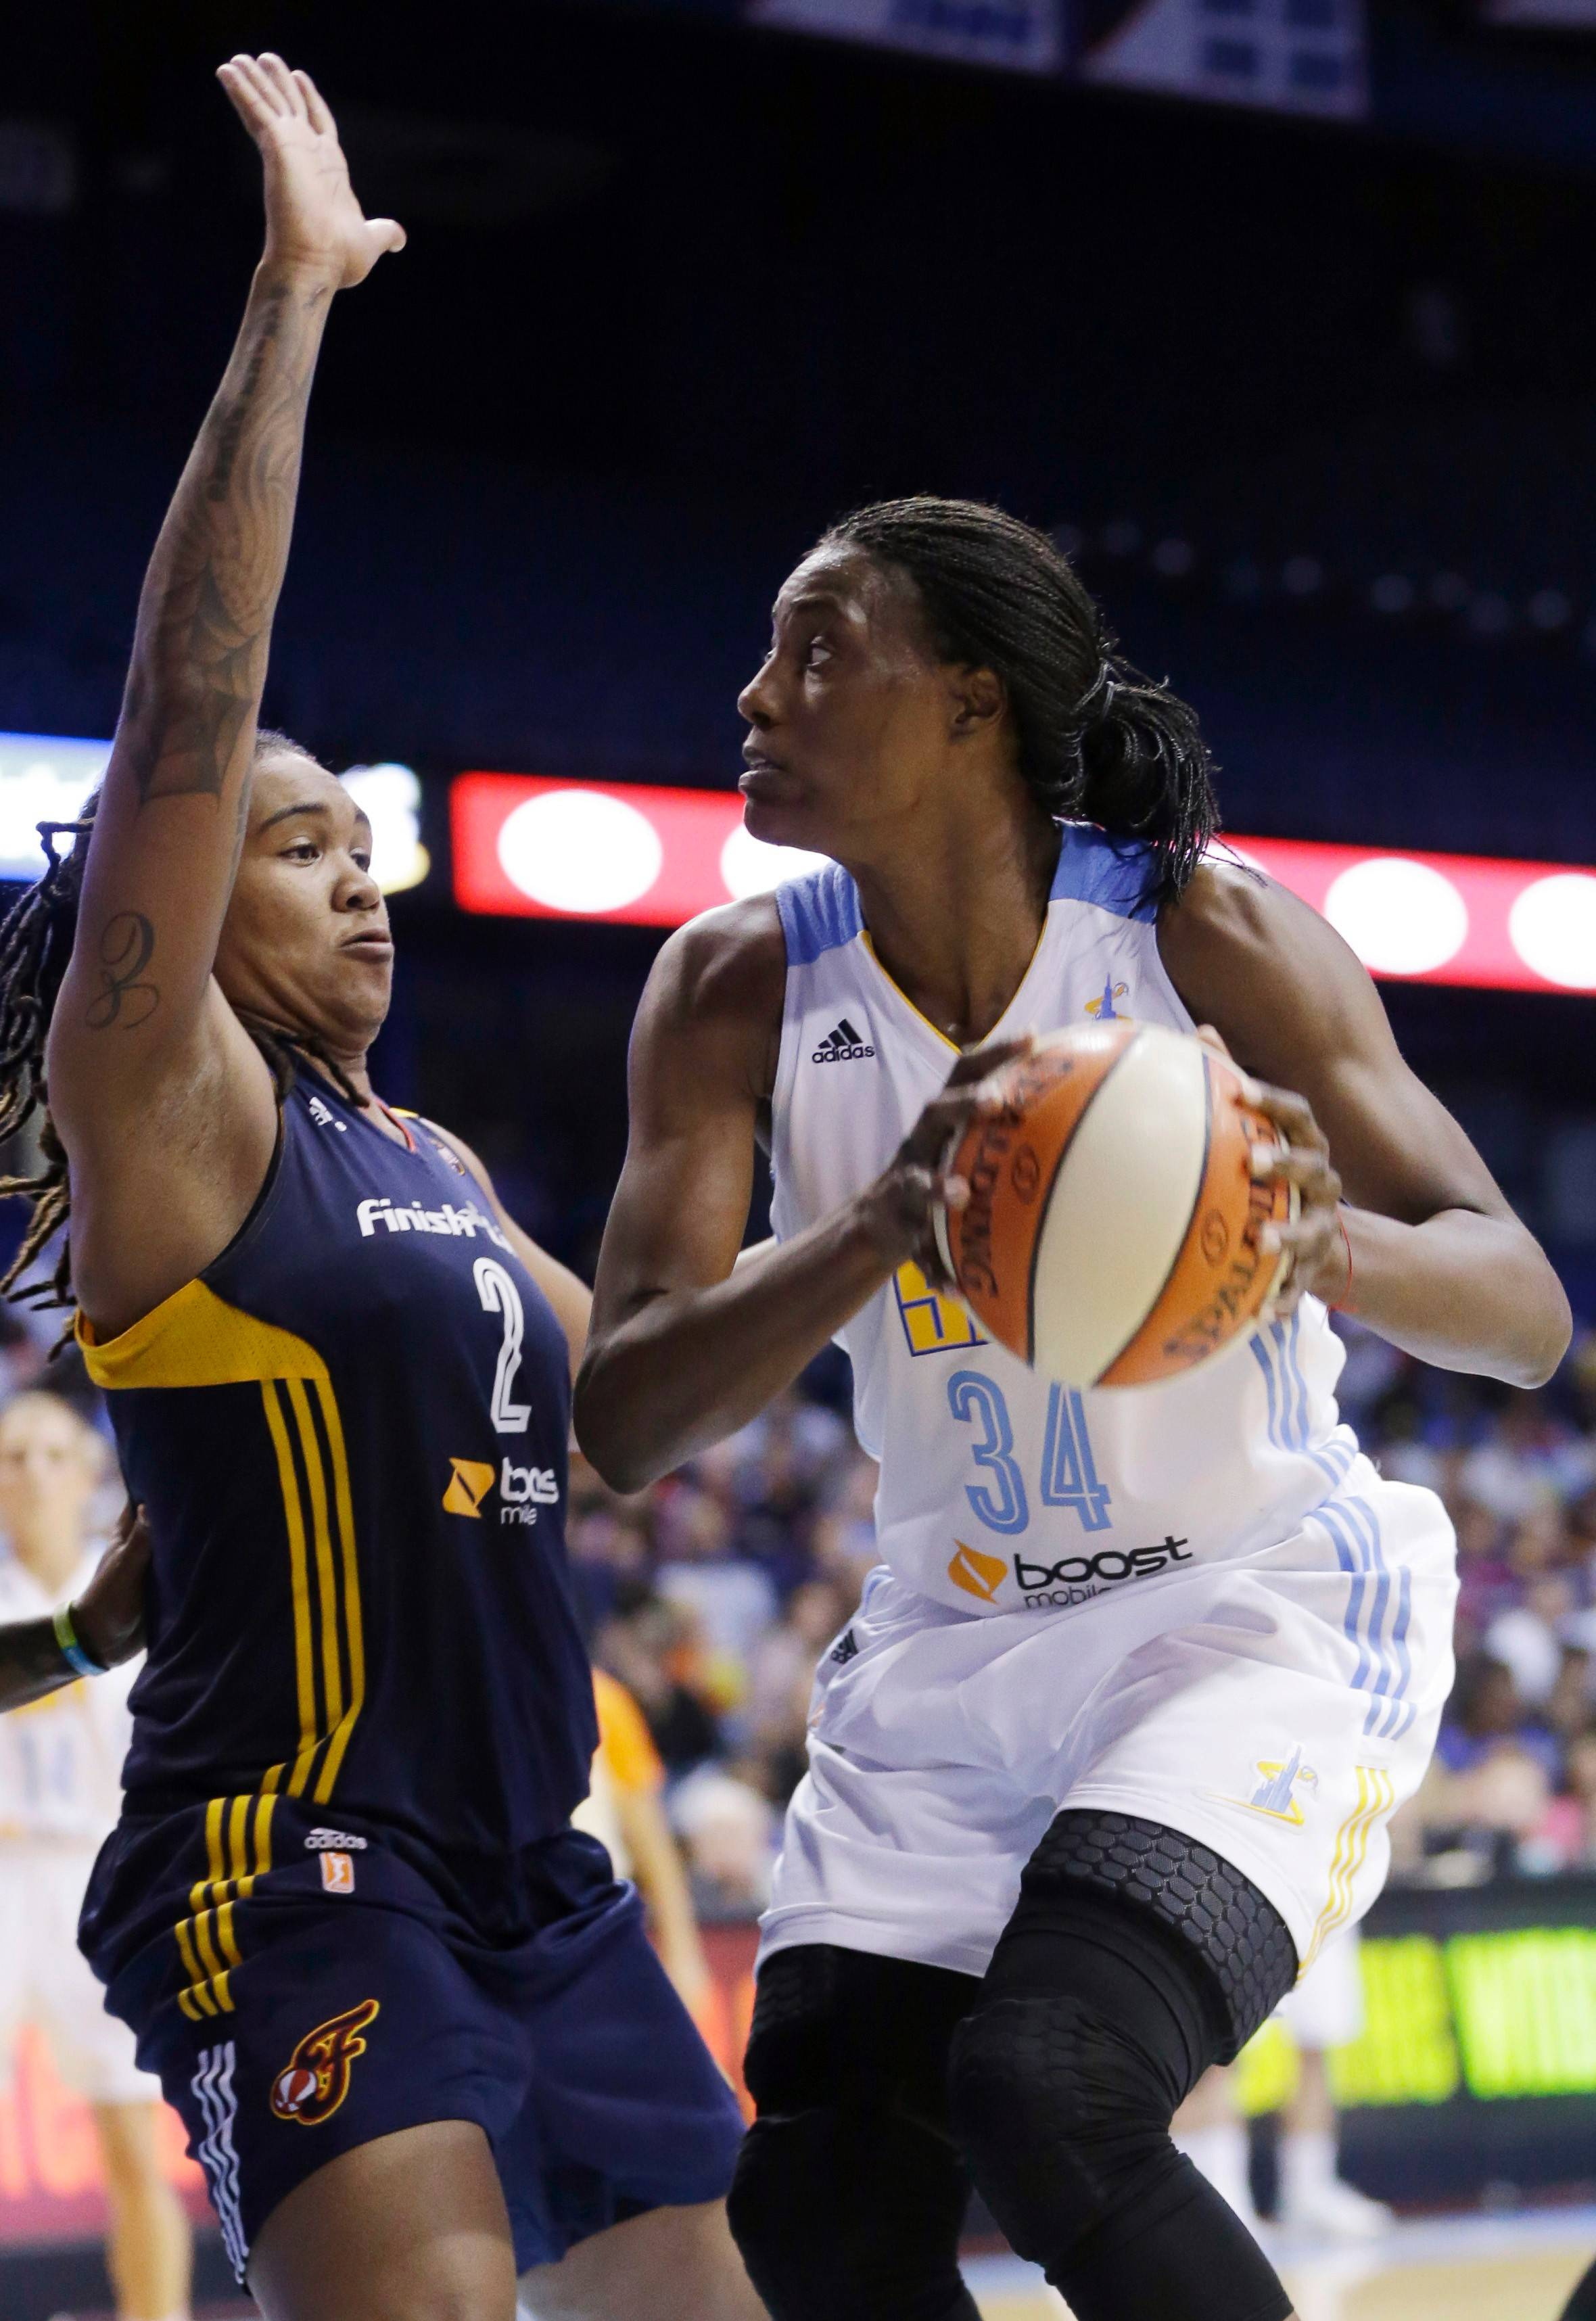 Chicago Sky center Sylvia Fowles, shown here in a WNBA game last season, is recovering from hip surgery and will miss the first few weeks of the season.